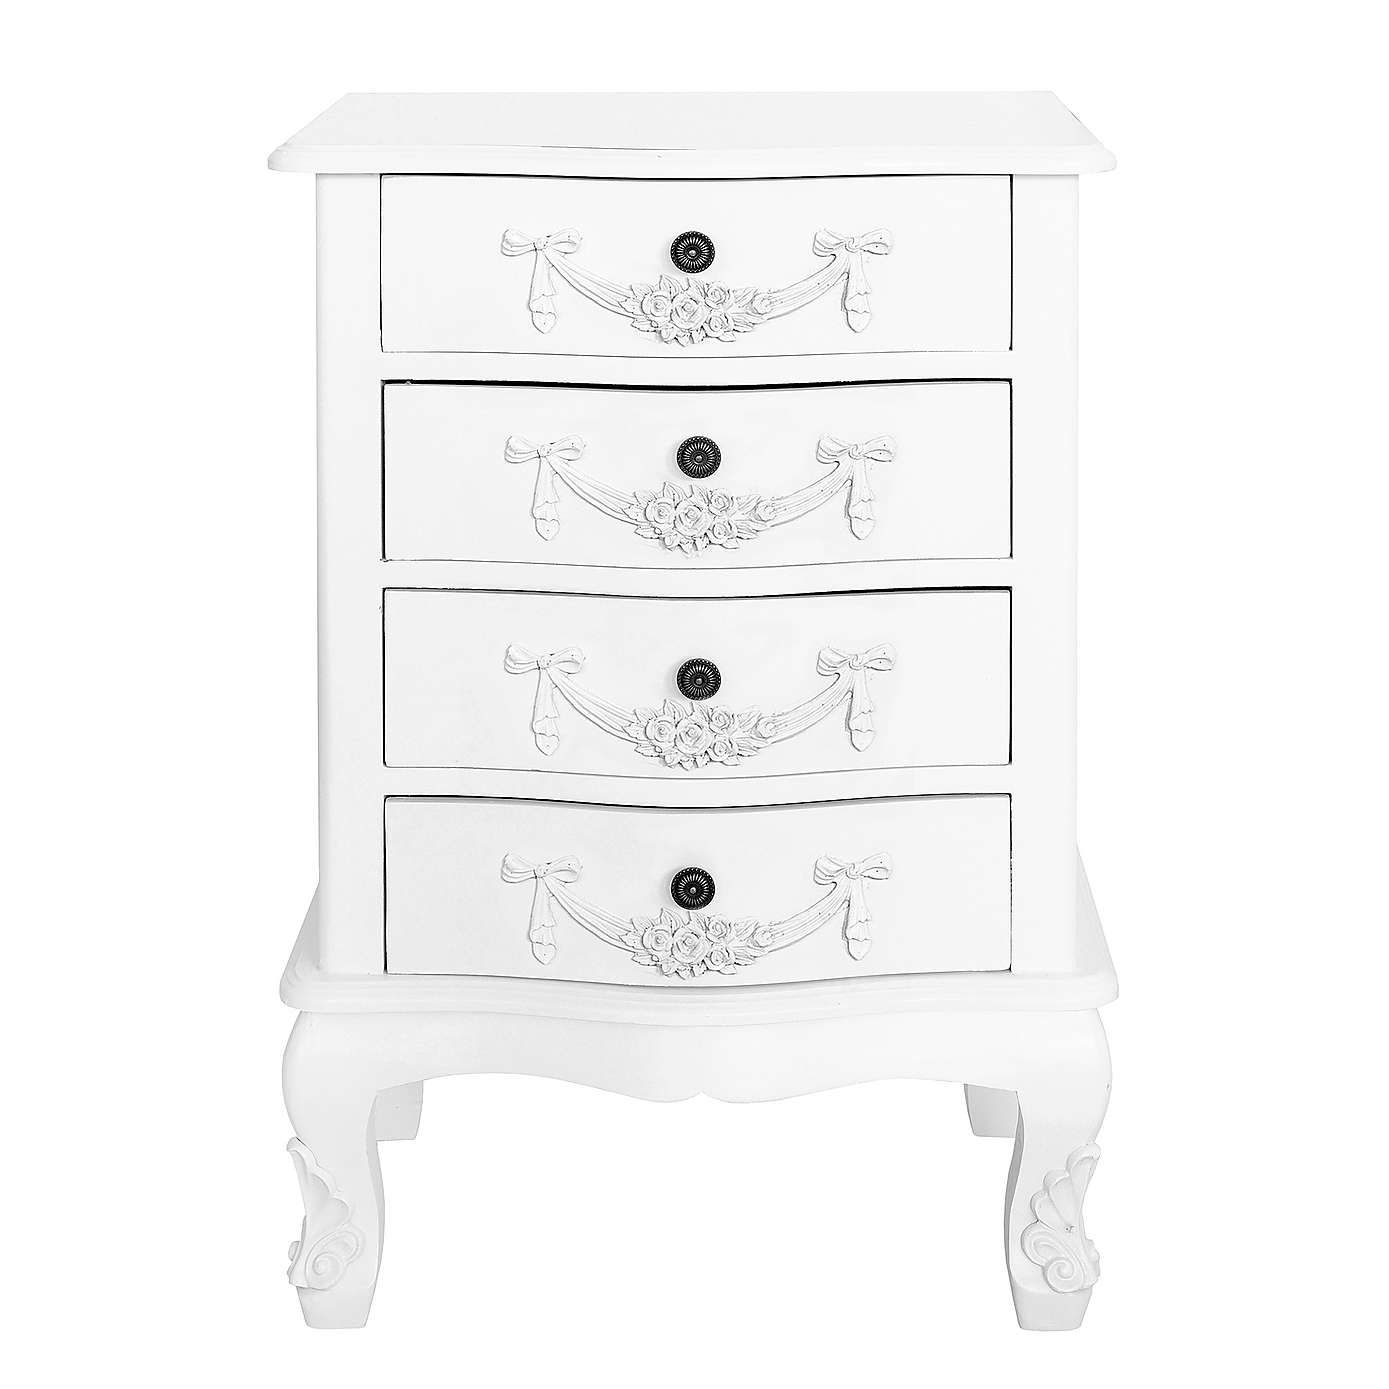 Toulouse White Bench White Bedroom Furniture Toulouse And - Toulouse bedroom furniture white